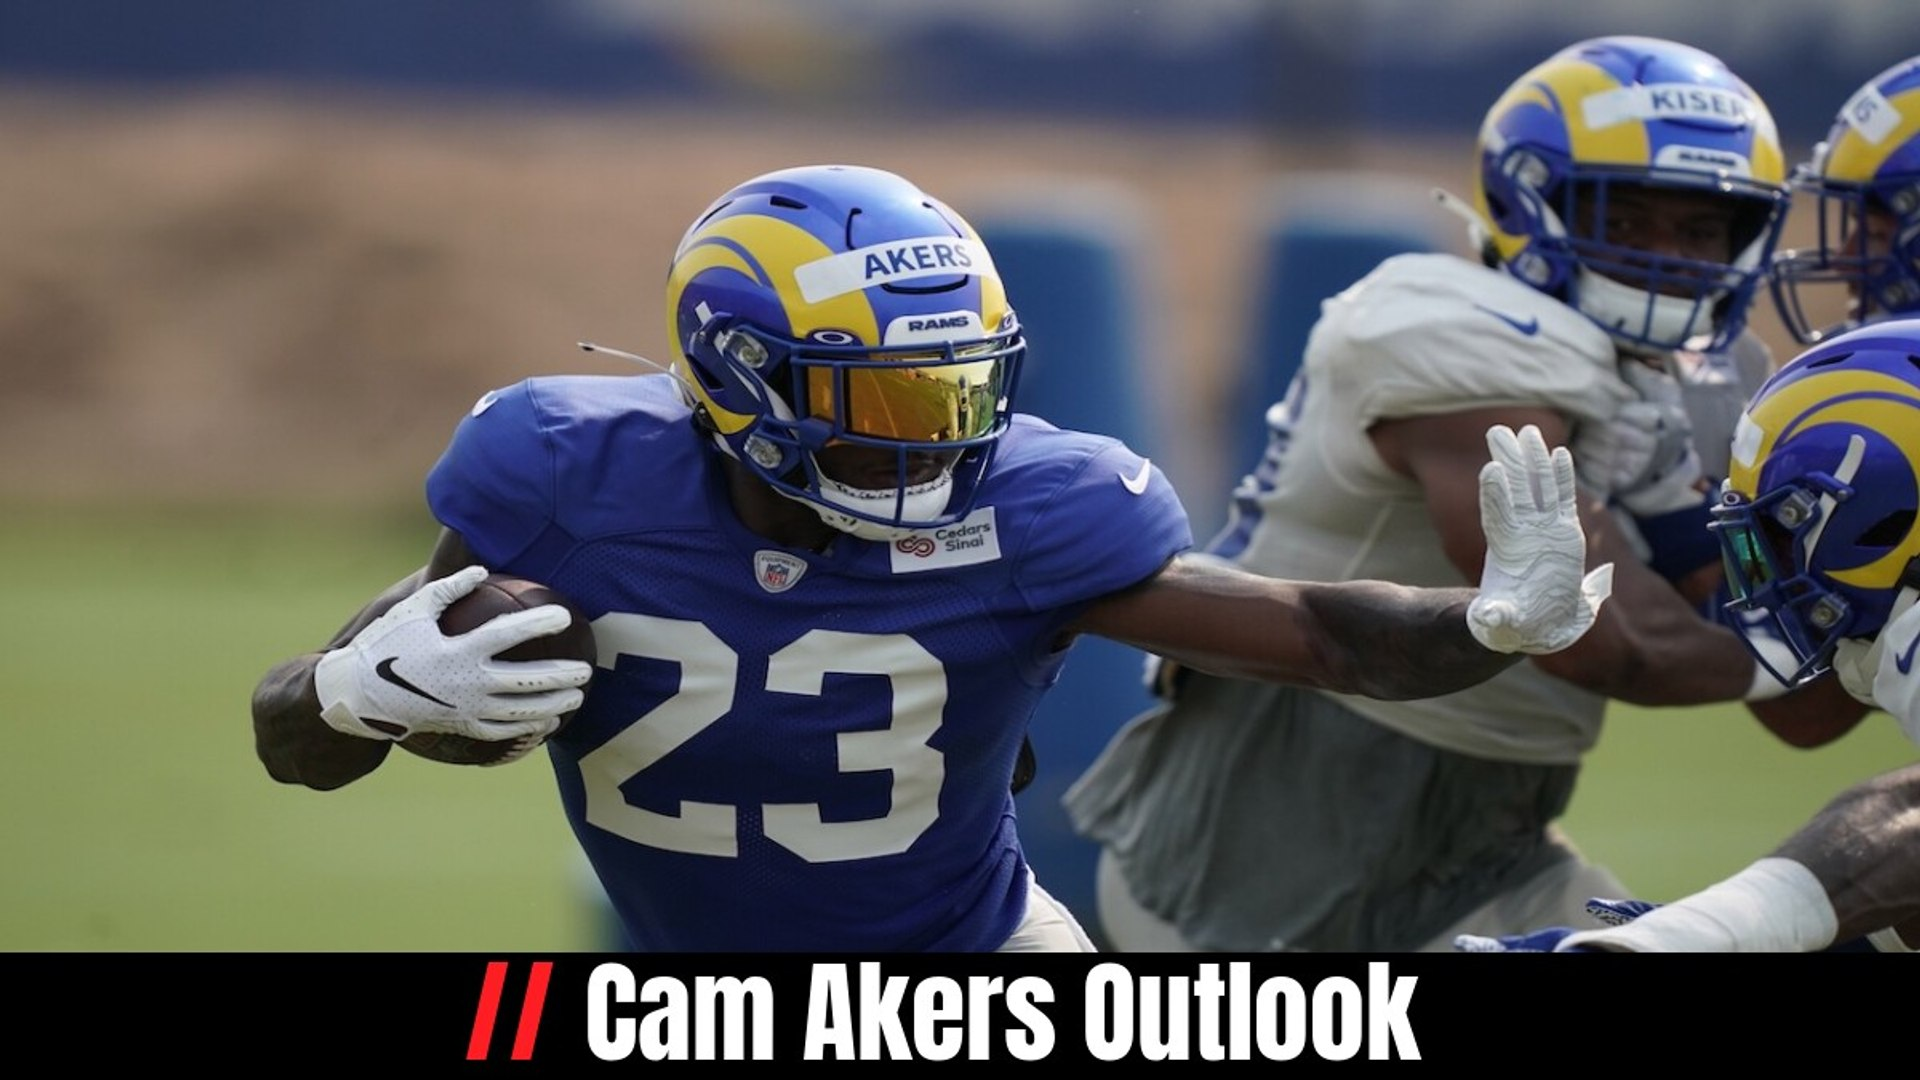 Cam Akers Outlook Video Dailymotion